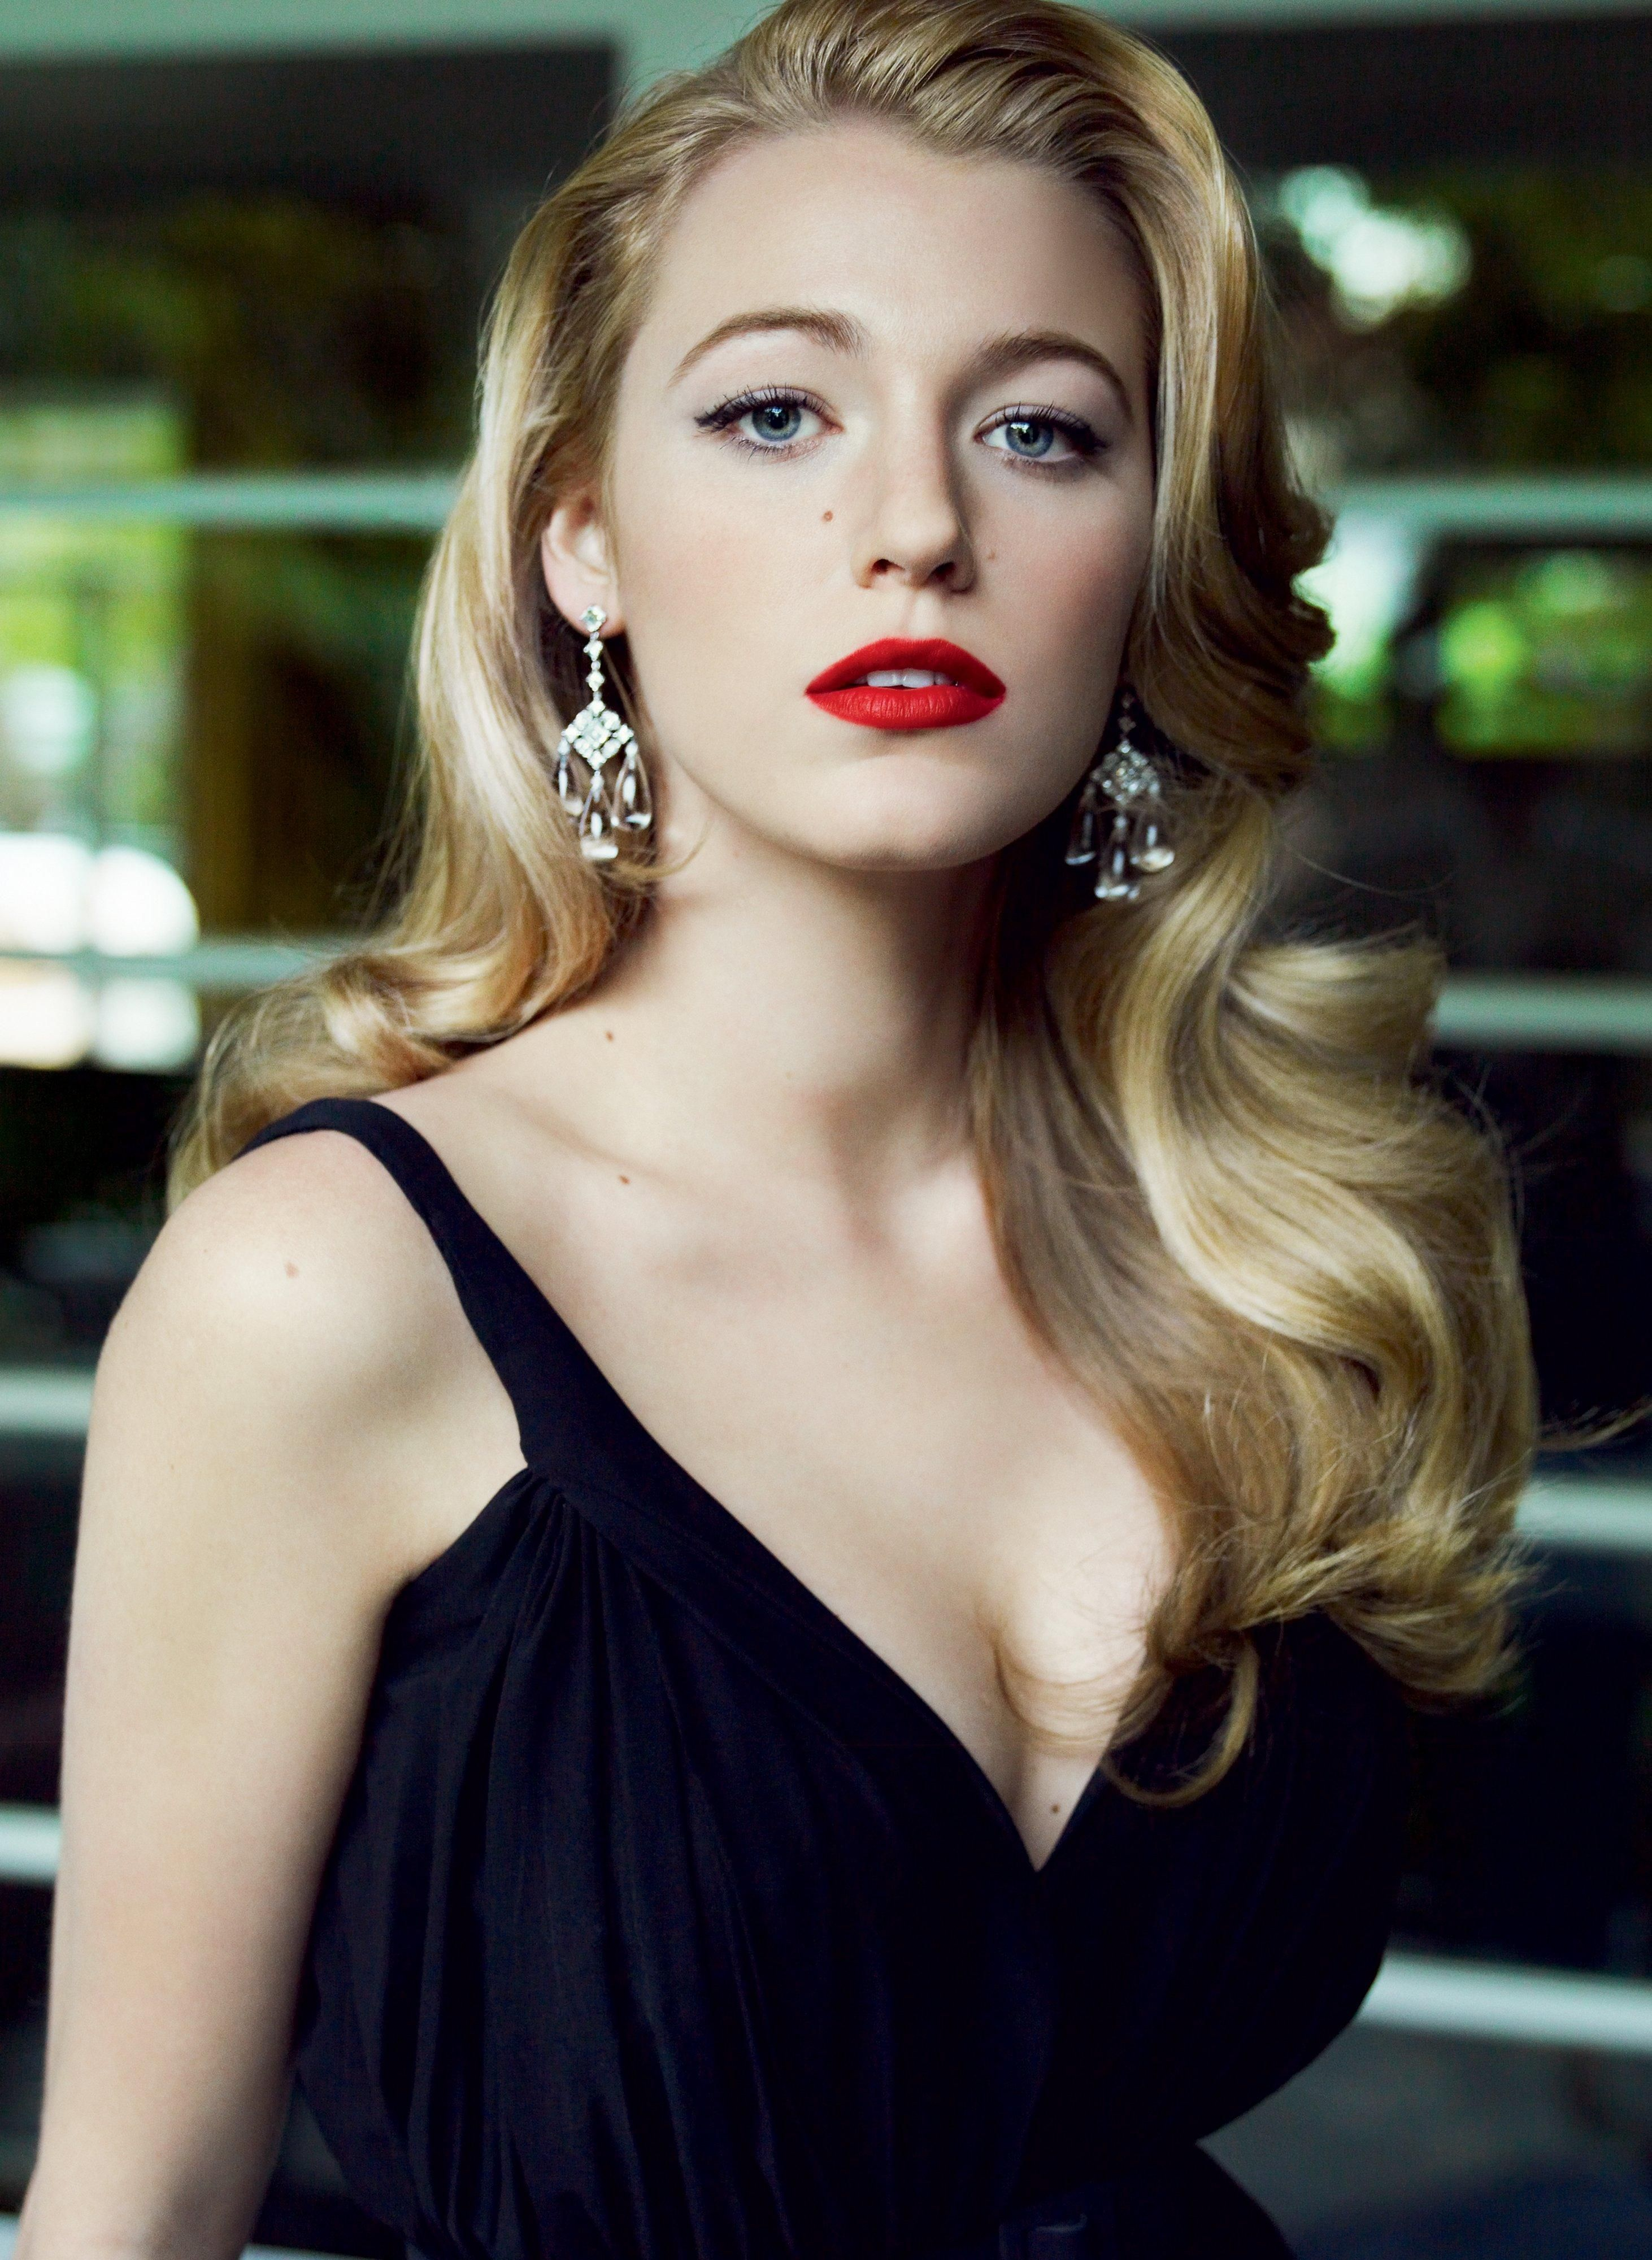 How Blake Lively Went From Blonde to Bronde in an